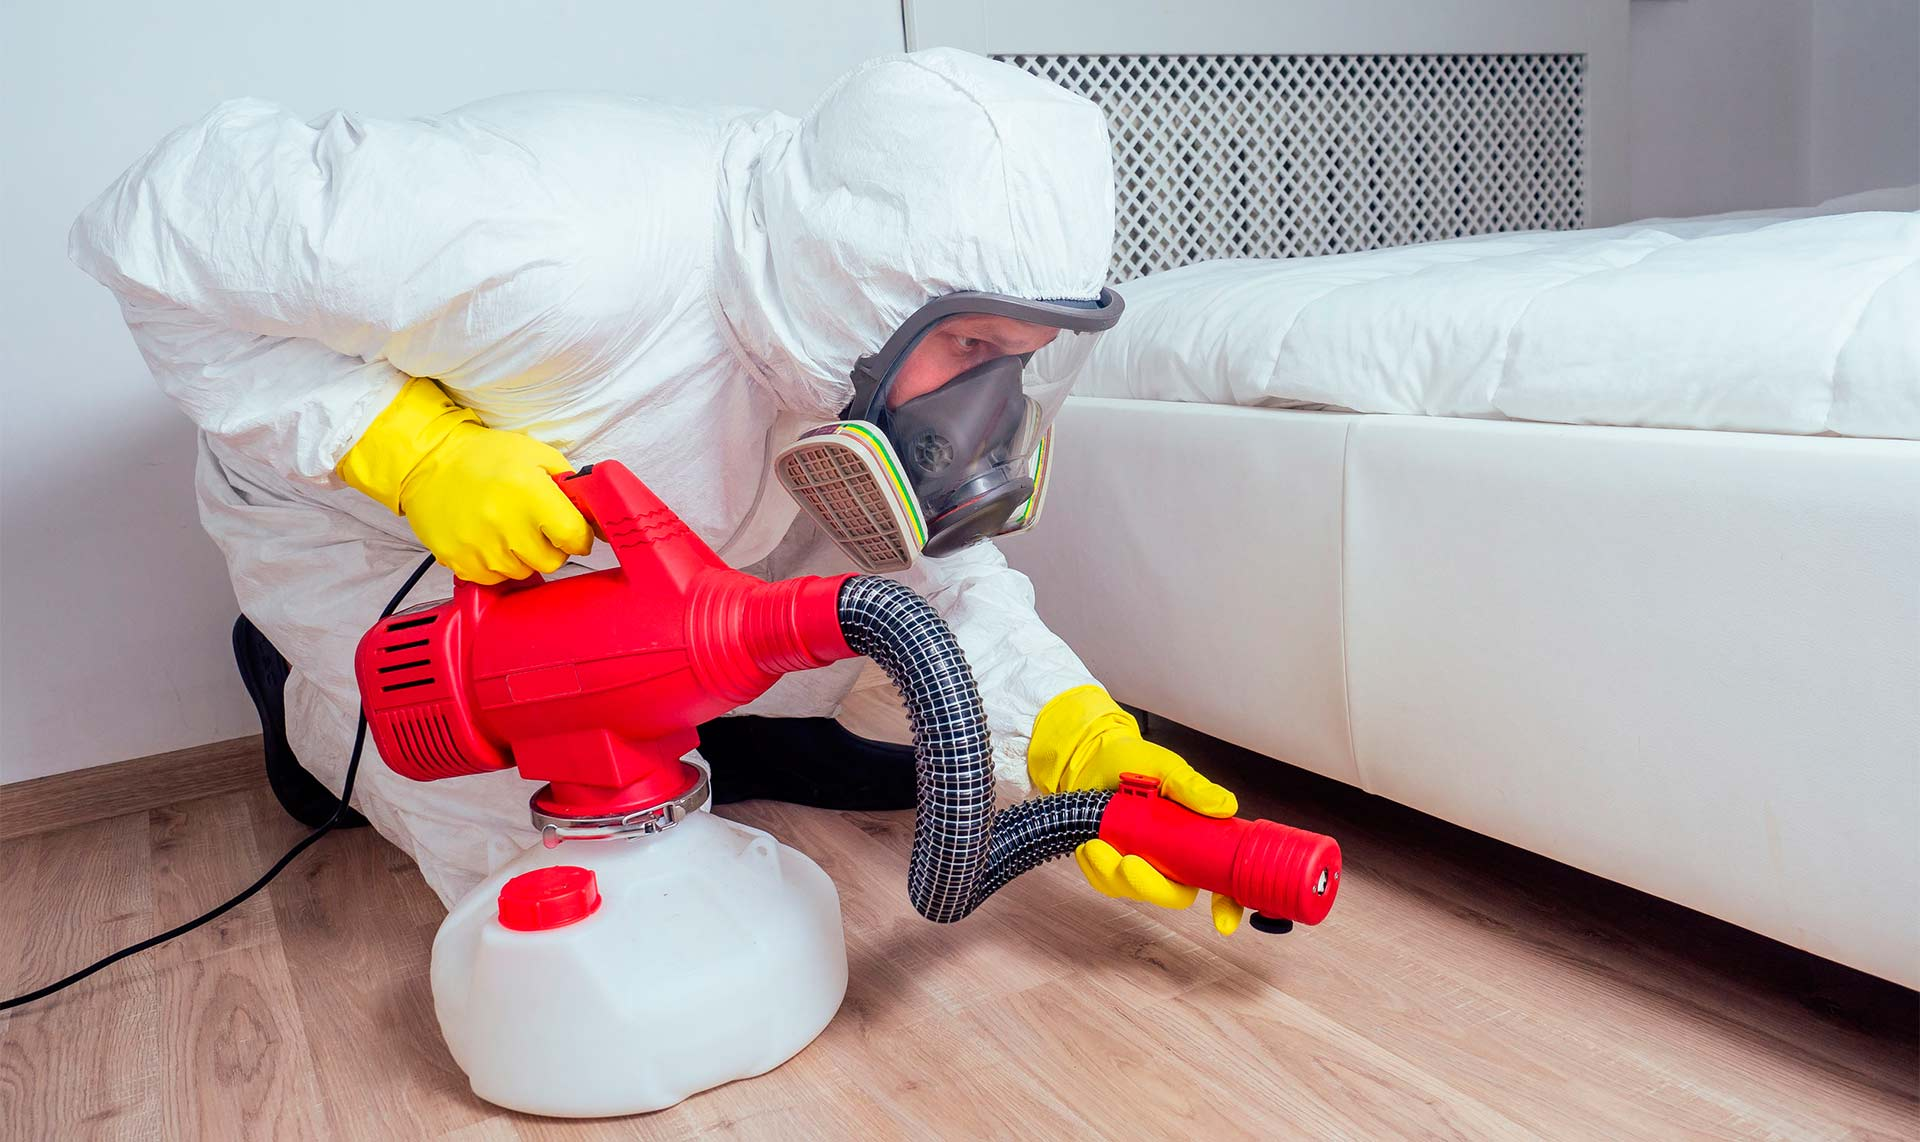 Pest Control & Home Cleaning Before Diwali